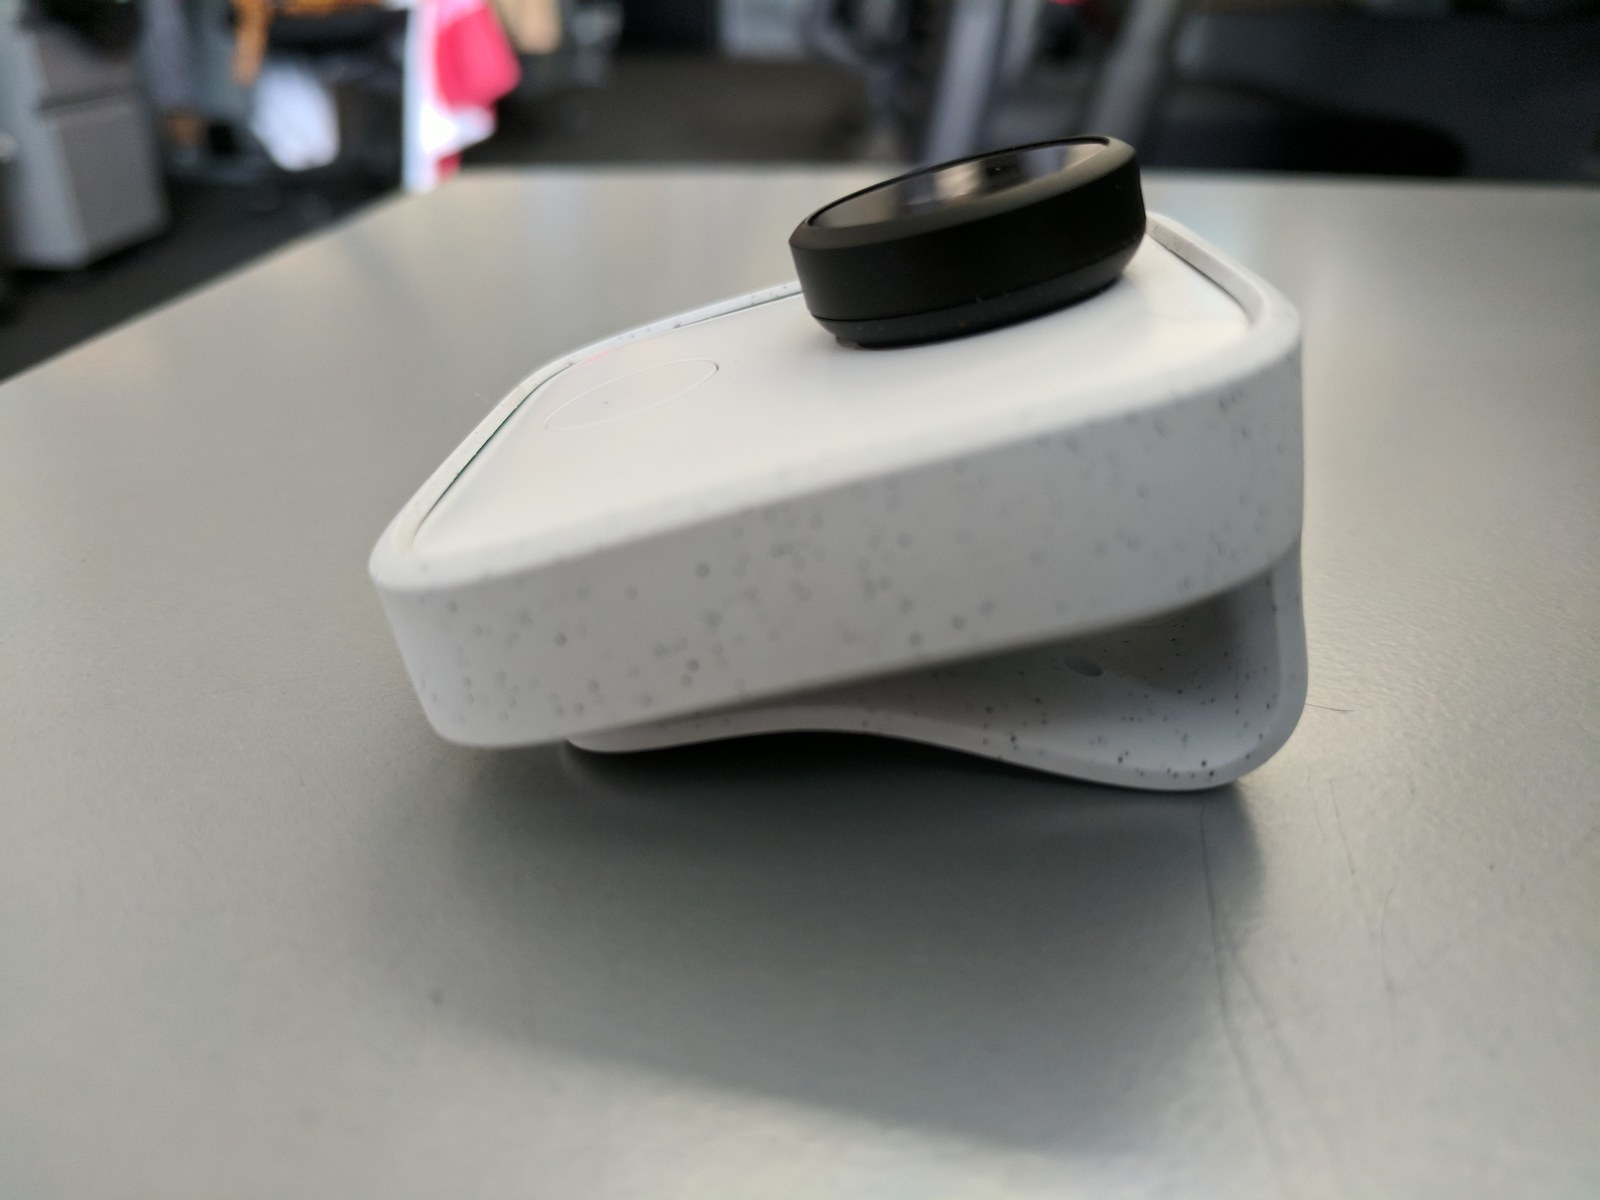 Google Clips is Google's answer to the GoPro